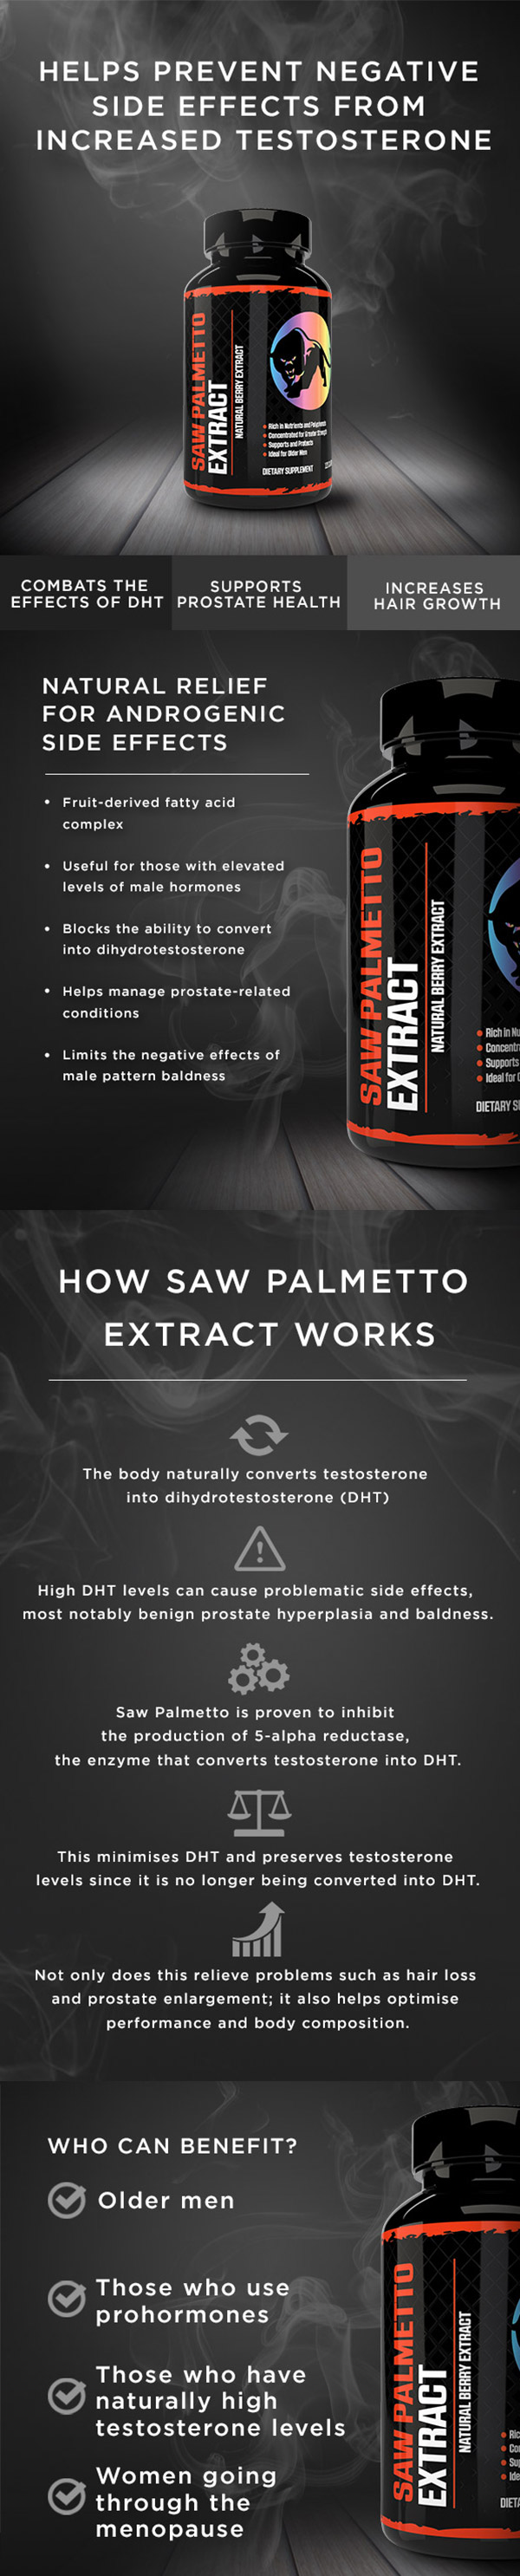 Predator Nutrition Saw Palmetto Extract Infographic